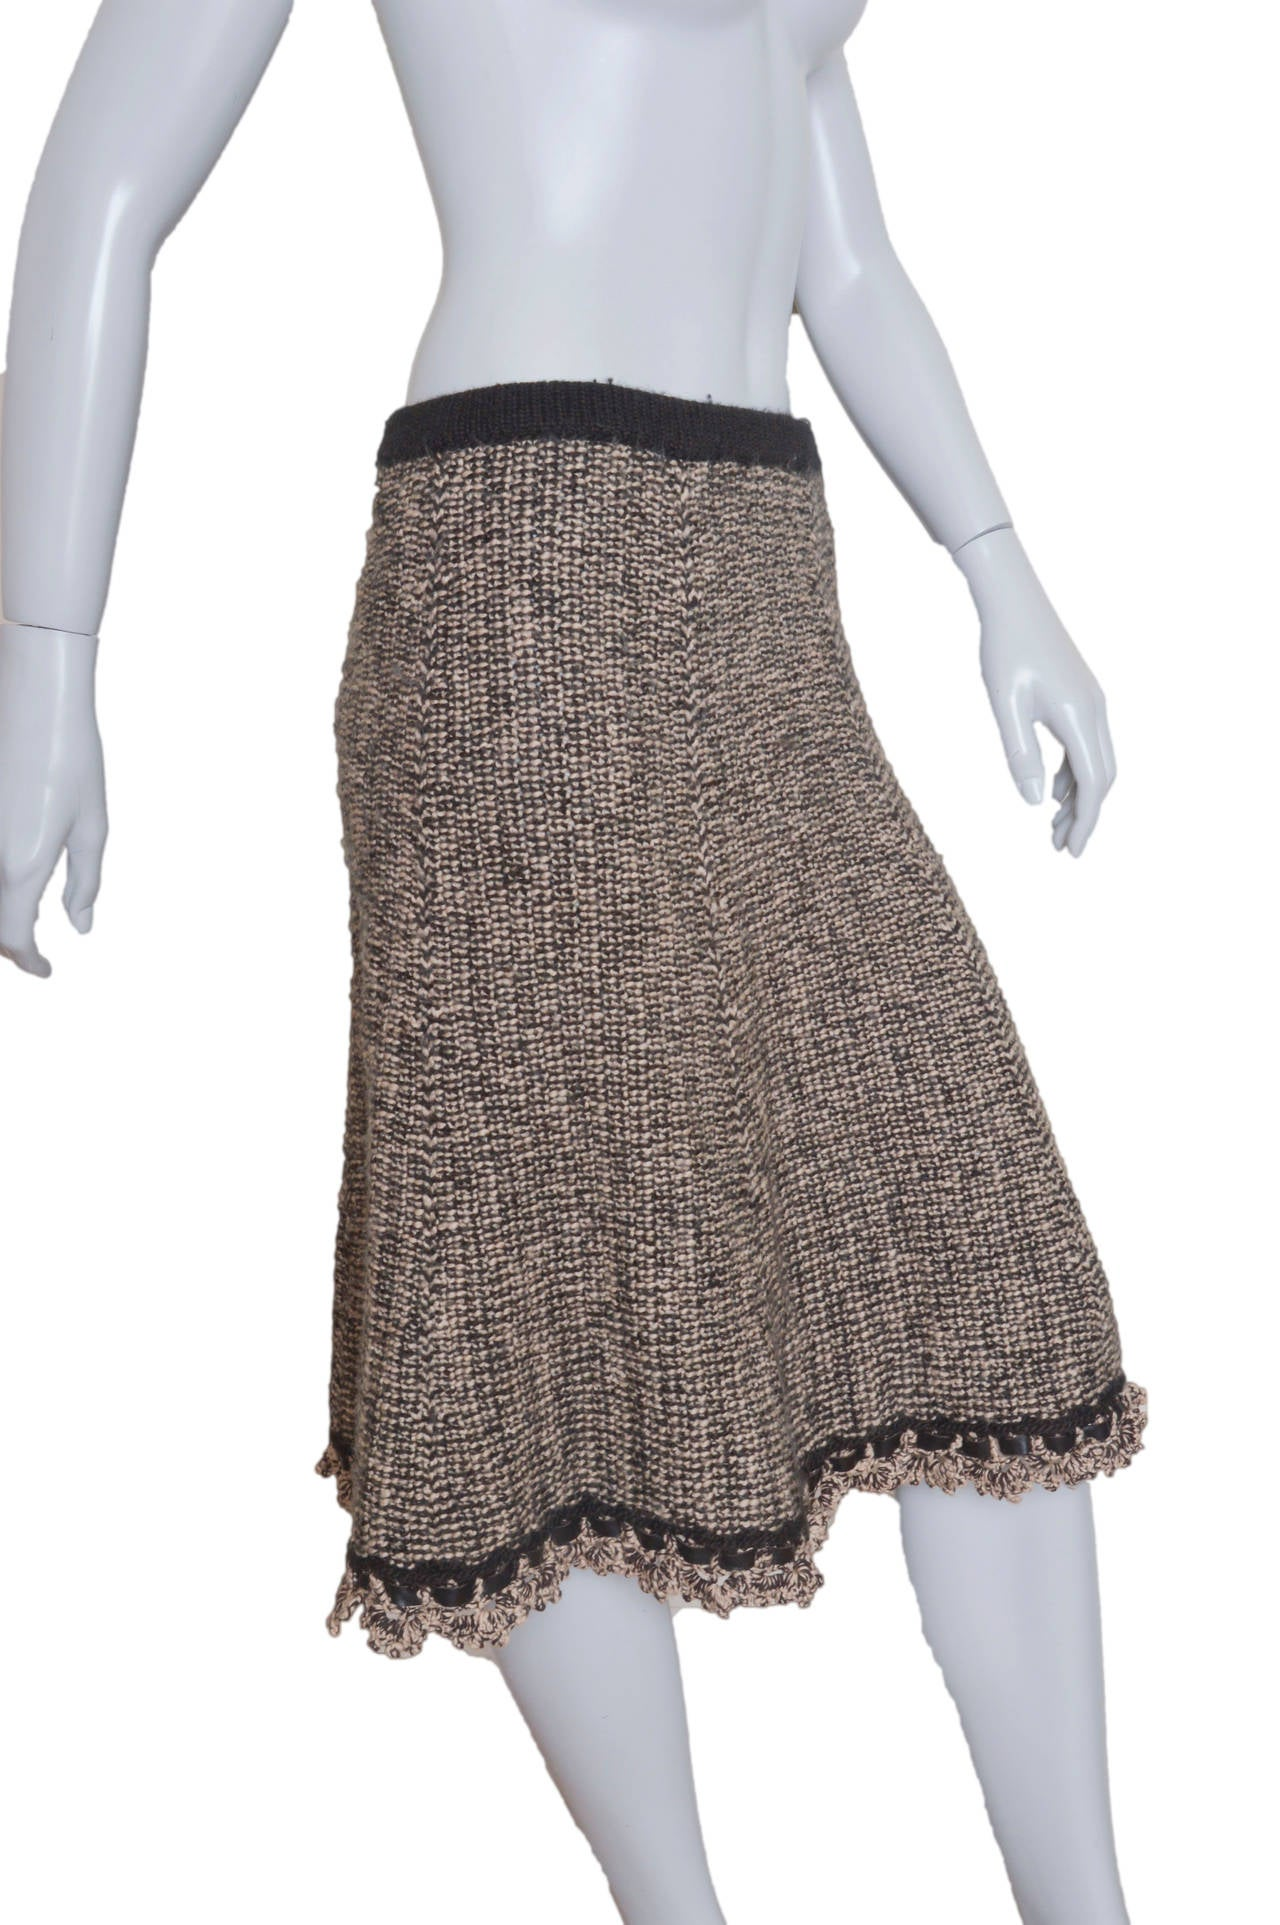 Chanel Woven Knit Skirt with Crochet Trim 2